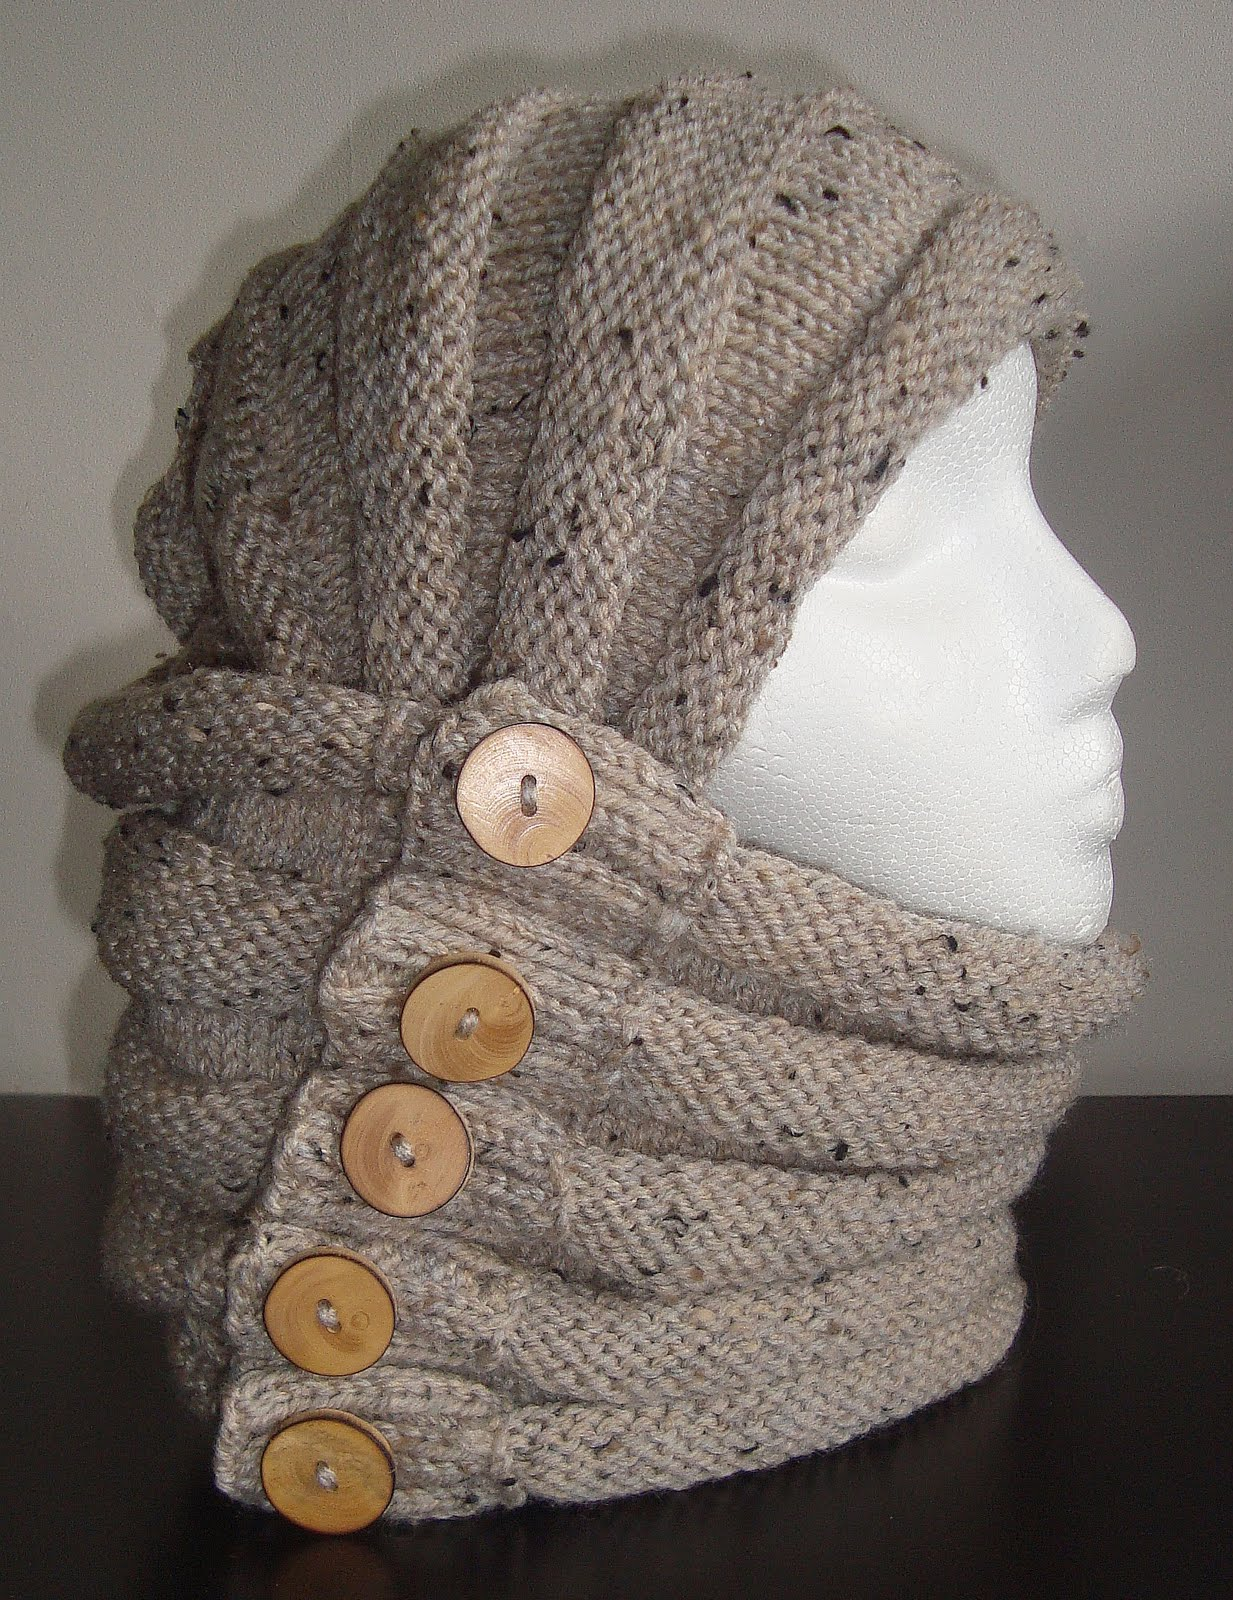 Knitting Pattern Design : Cowl. Hood. Scarf. Shrug. Hand Knitting Pattern. Four ways ...